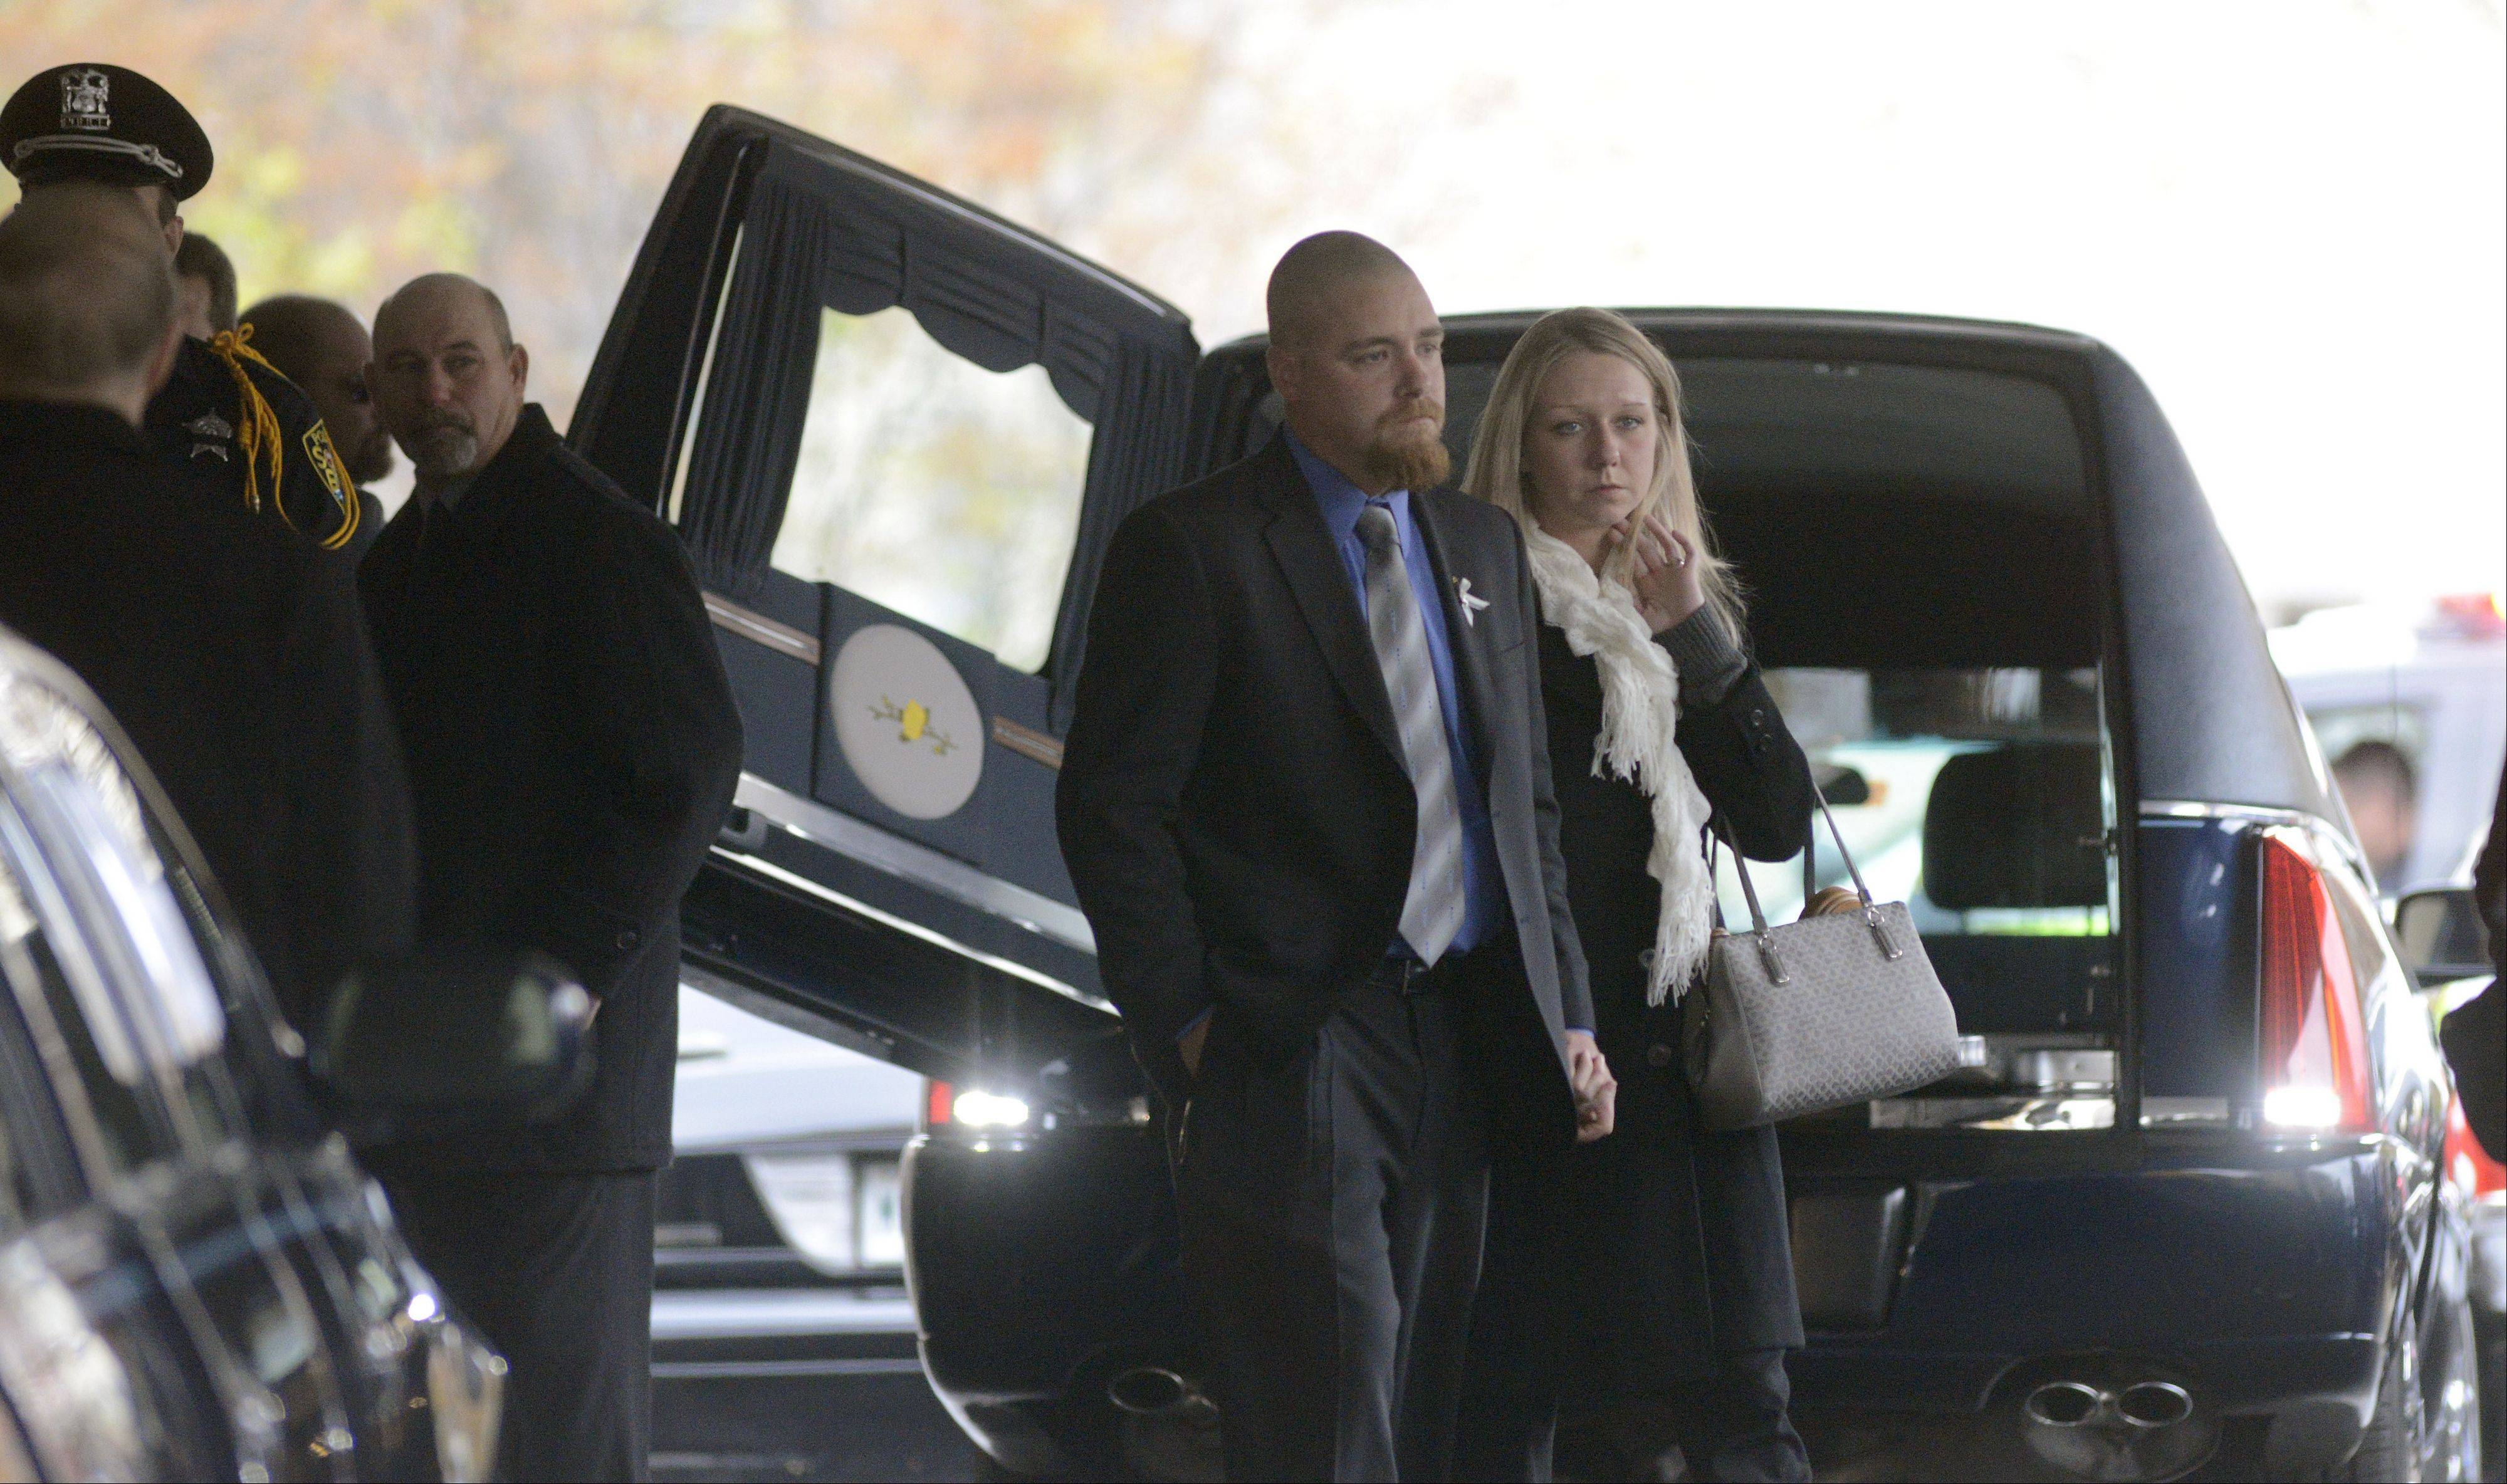 Dustin Hansen and his wife, Jennifer, depart Laird Funeral Home in Elgin Thursday after the funeral for his father, South Elgin Village President Jim Hansen.